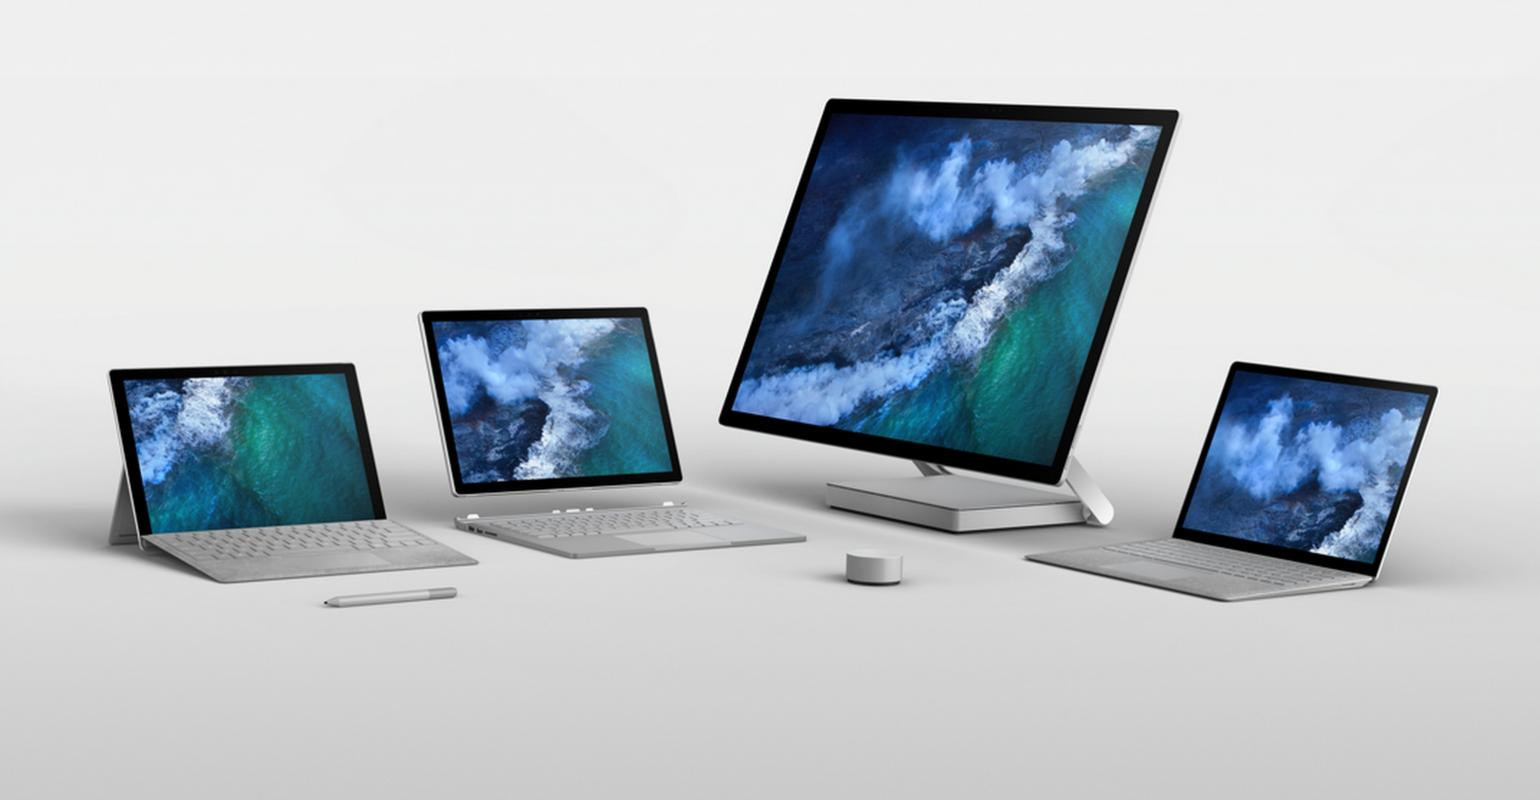 Hardware | Surface owners can troubleshoot and & update